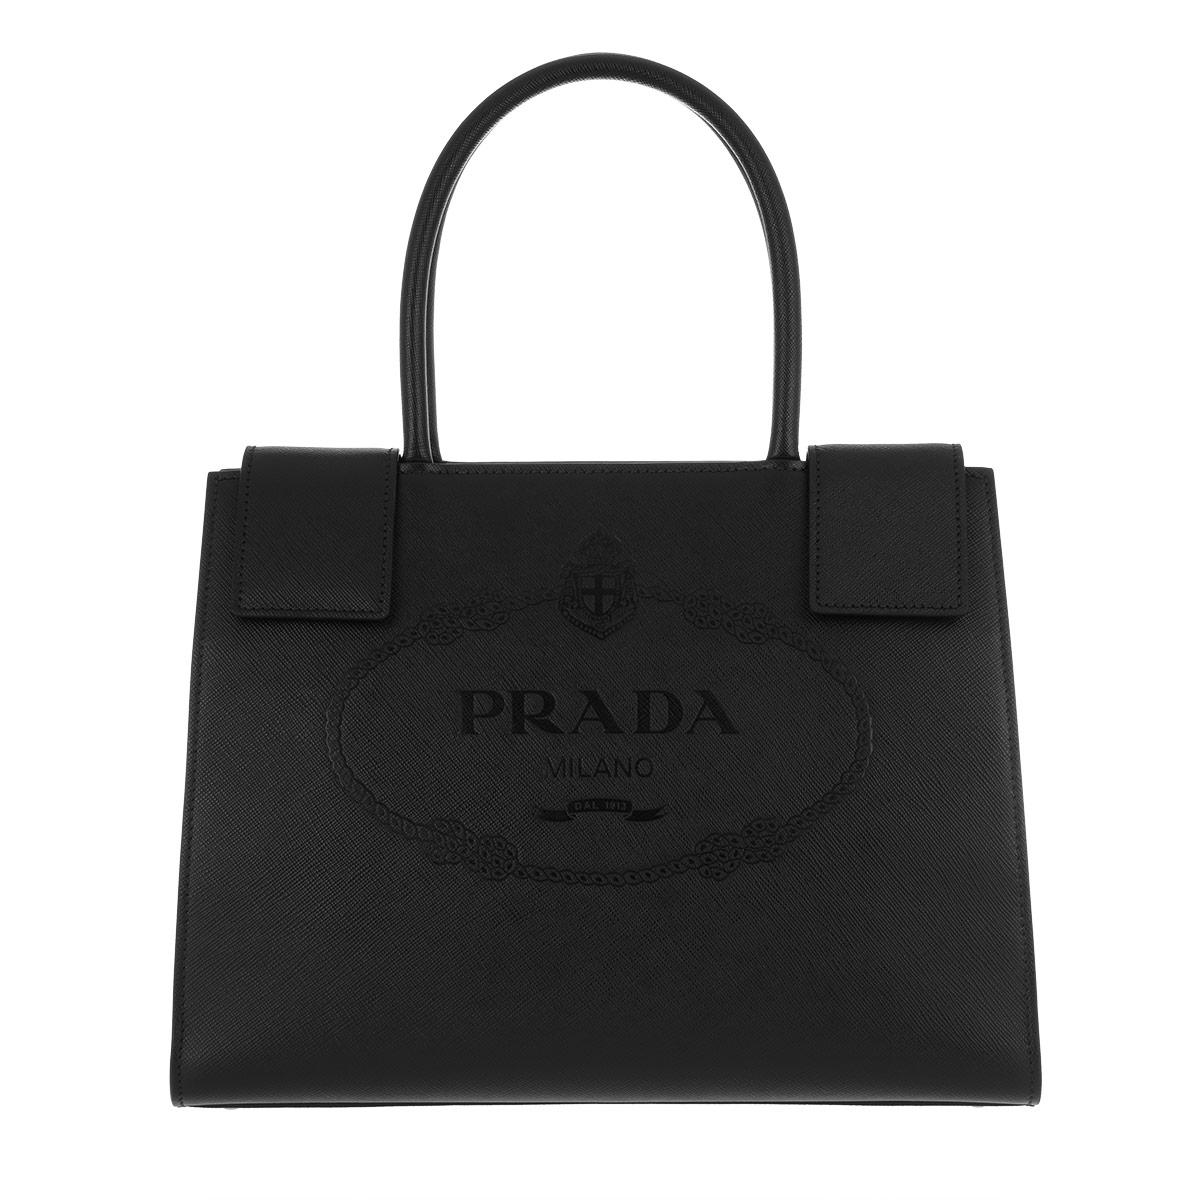 Tote - Shopping Bag City Calf Nero/Soleil - yellow, black - Tote for ladies Prada